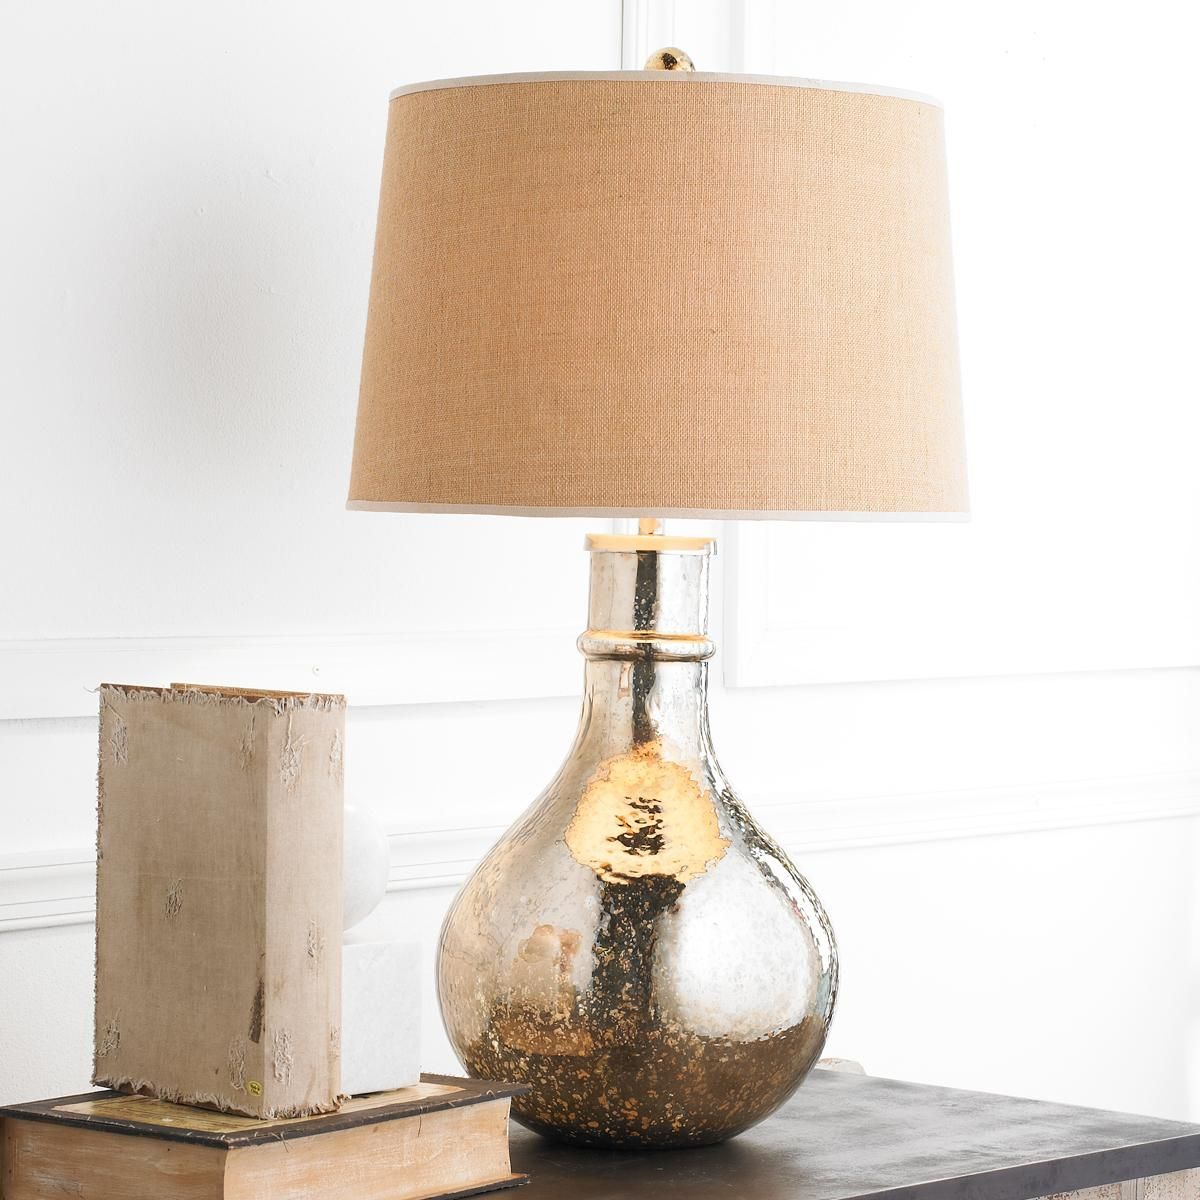 9 Best New Lighting Table Lamps, Great Colors, Designs, Mercury Glass Some  With Mid Eastern Influences Images On Pinterest | Mercury Glass, Drum Shade  And ...